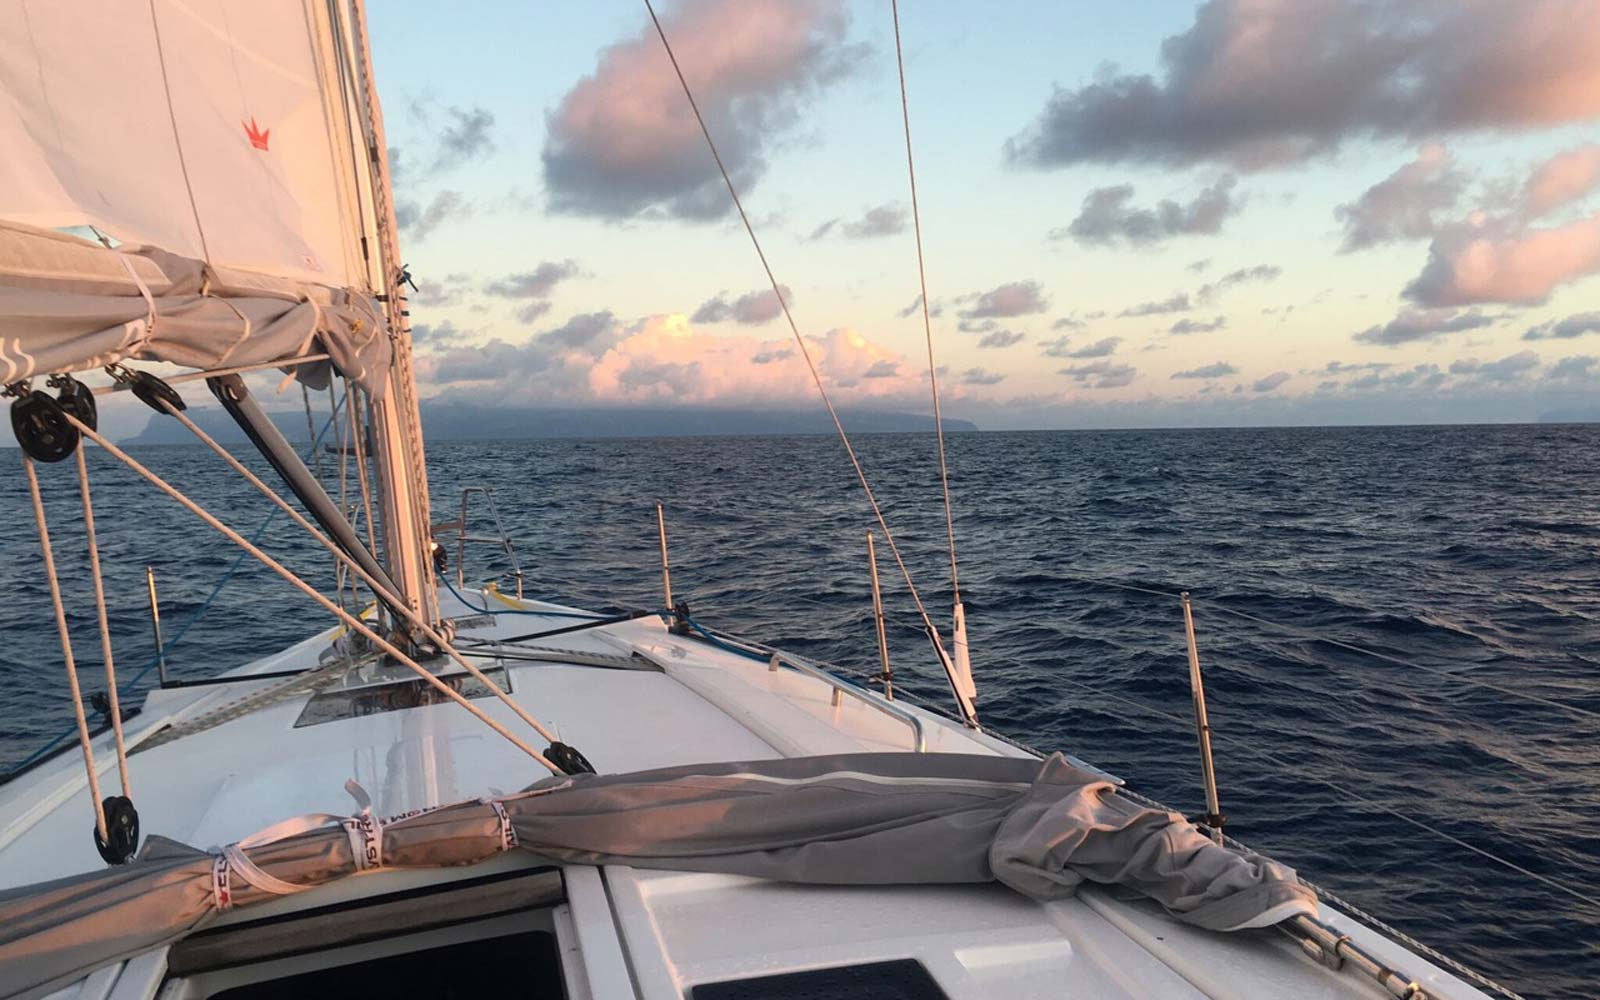 azores-sea-and-sail-AZORES1016.jpg